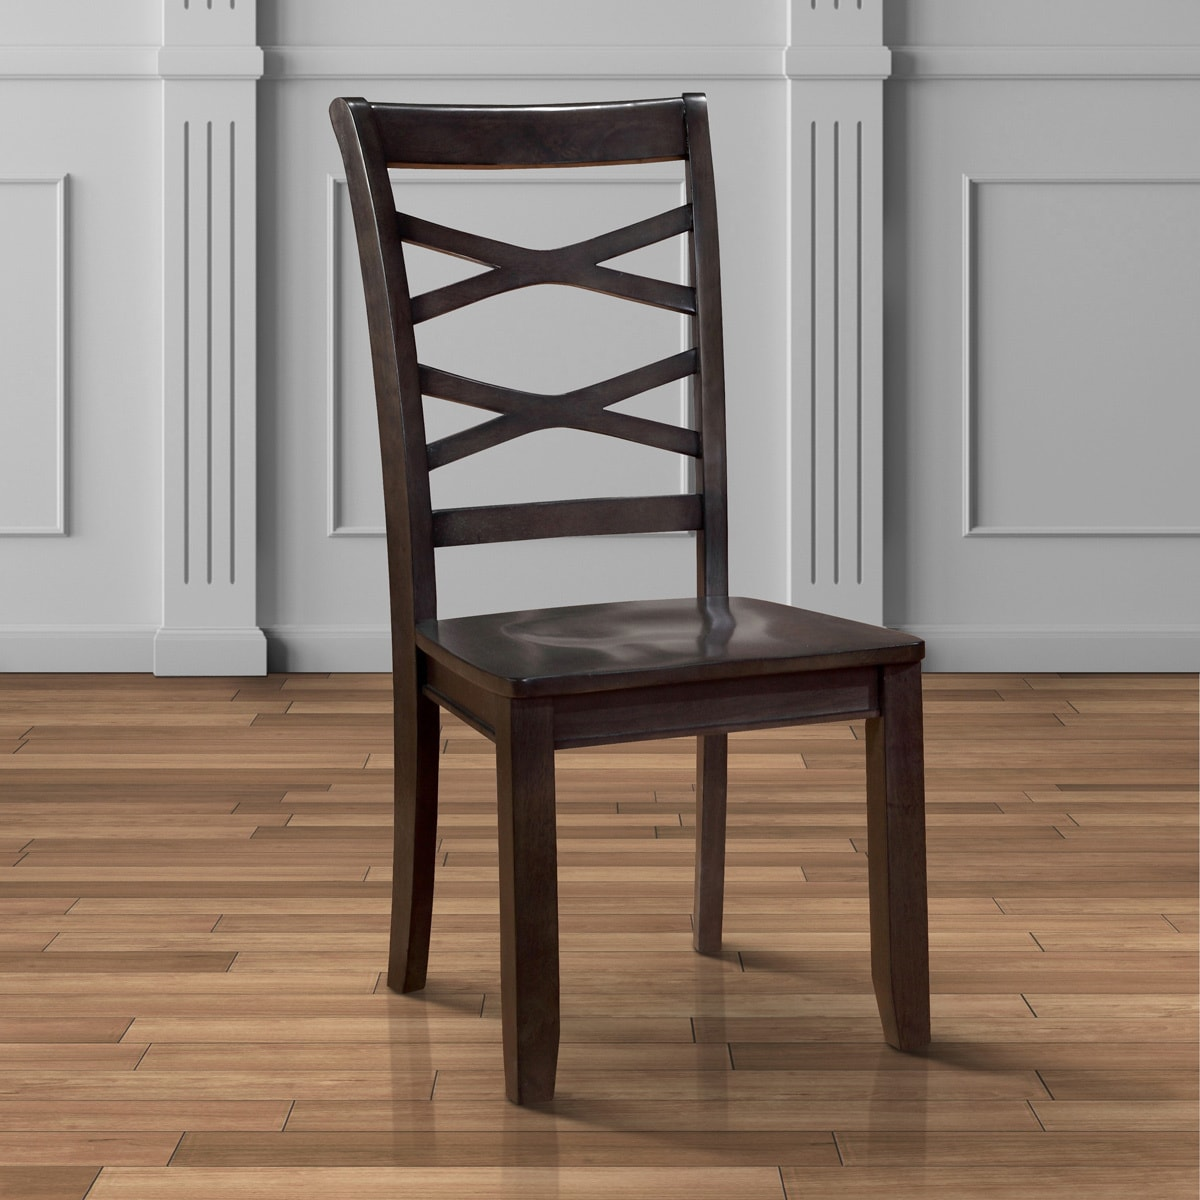 Copper Grove Bedgebury X Back Dining Chairs Set Of 2 Ebay # Muebles Justo O Grove